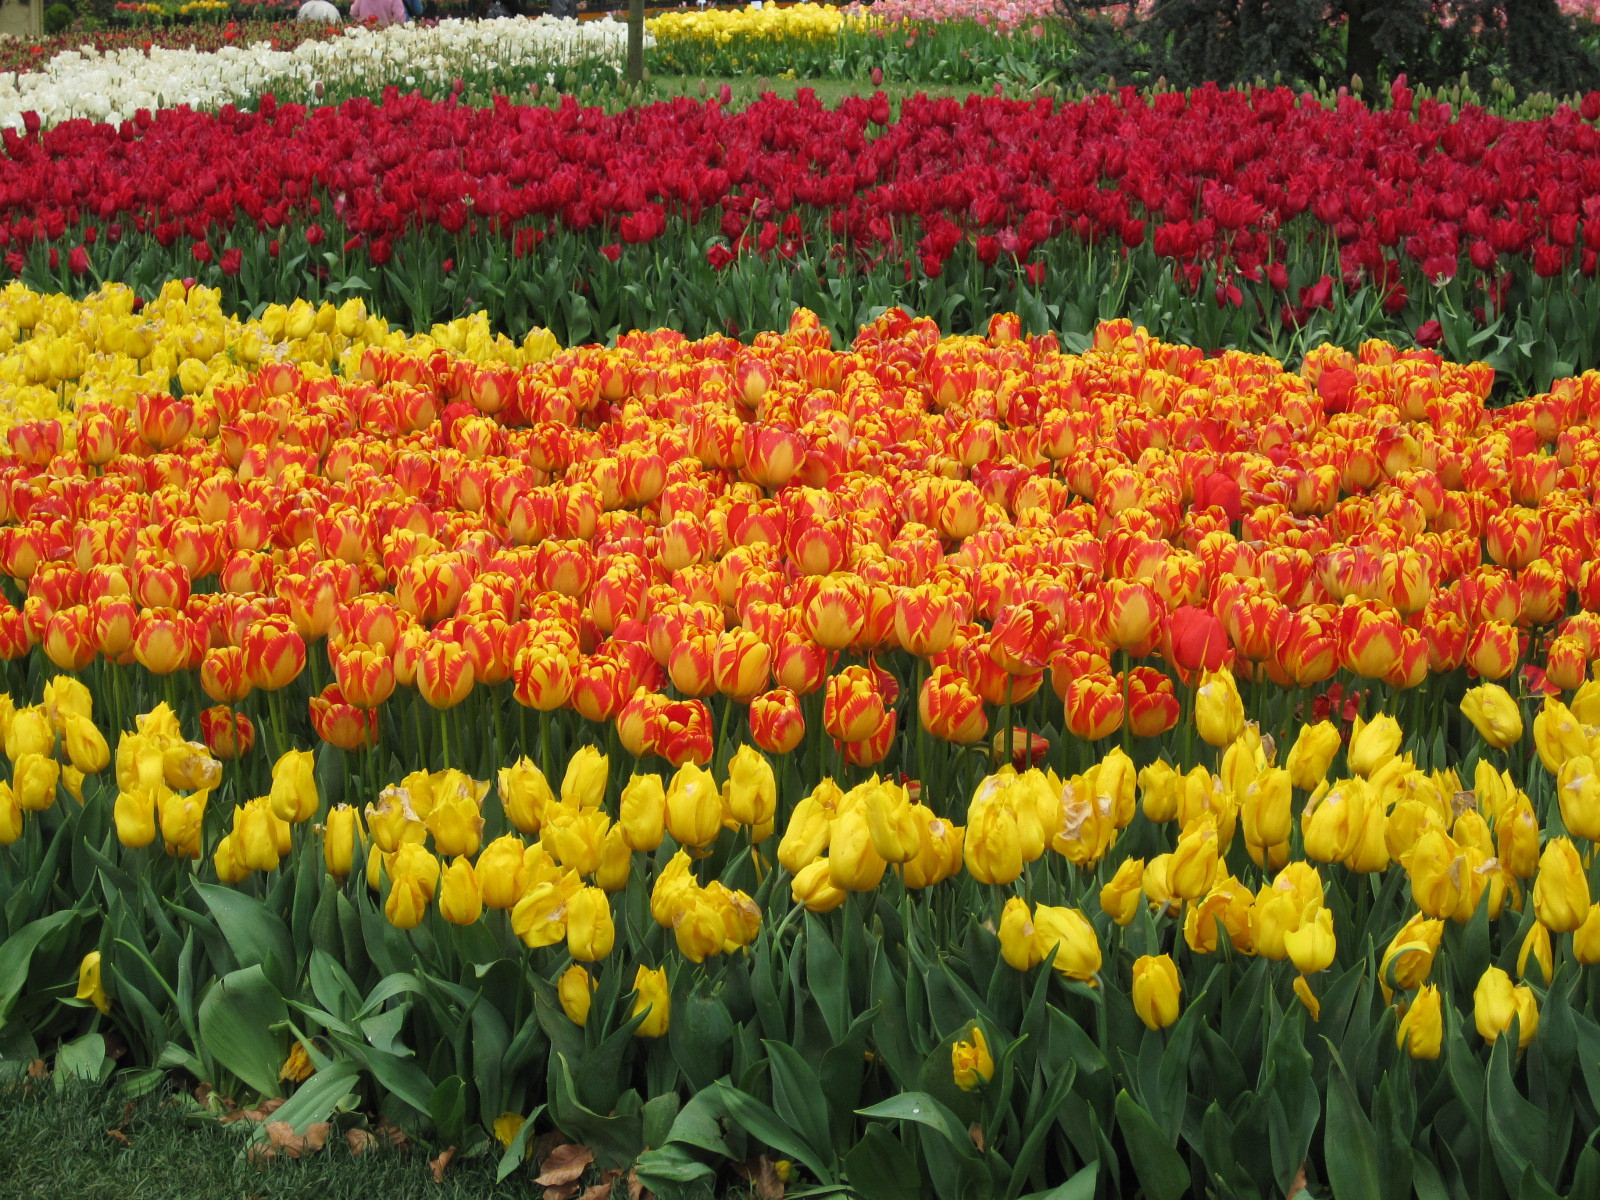 Never in my life have I seen floral displays like the tulips in Emirgan Park. Istanbul, Turkey: chapter 64, You must only to love them. http://mershon.wordpress.com